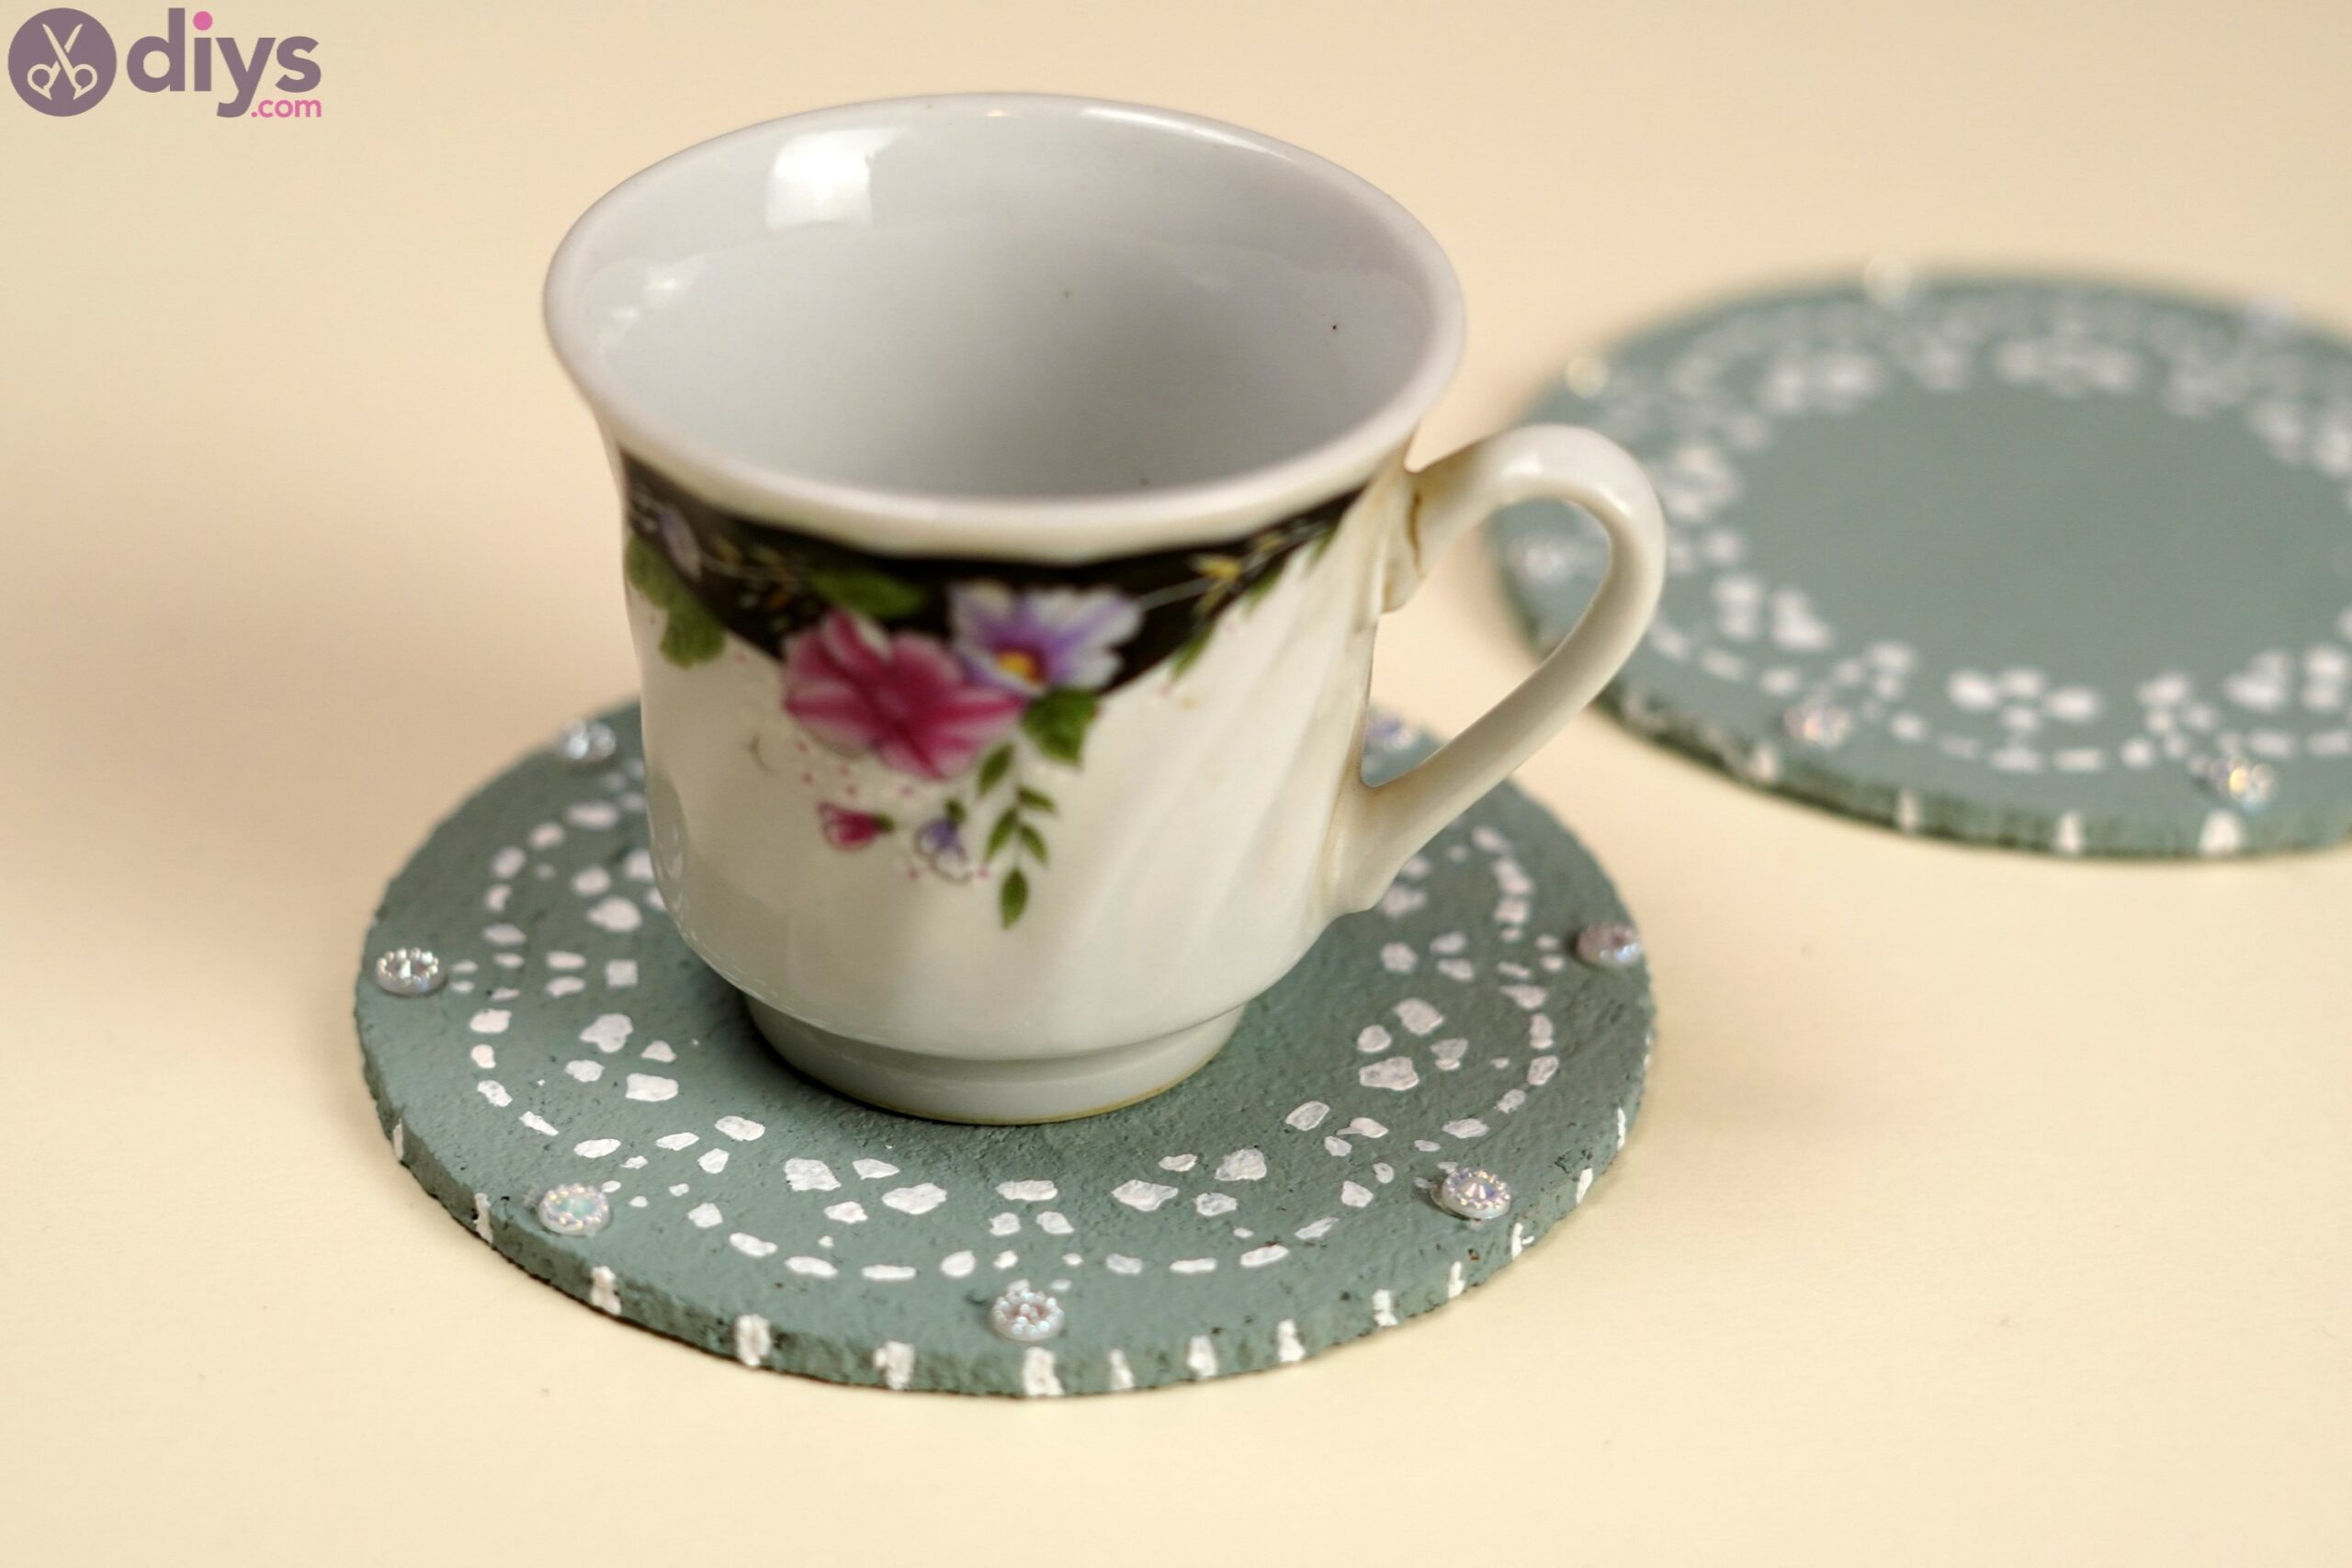 Coaster with lace paper photos (3)